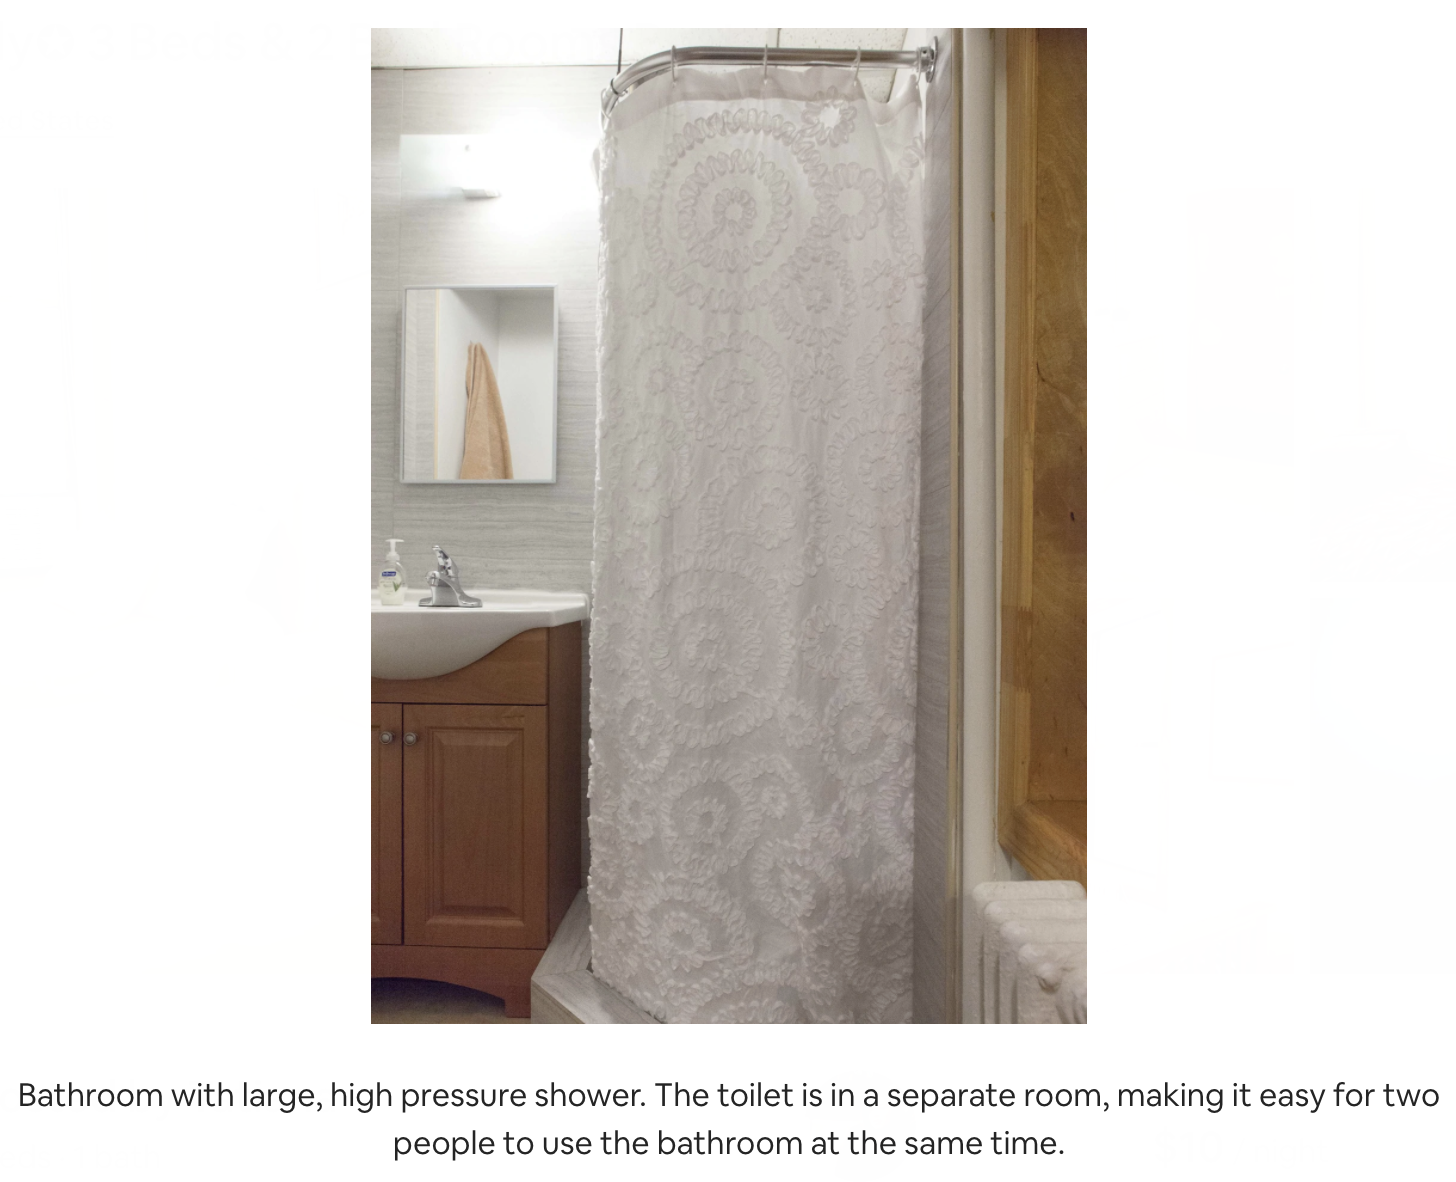 a shower photo from the airbnb website with the following caption: Bathroom with large, high pressure shower. The toilet is in a separate room, making it easy for two people to use the bathroom at the same time